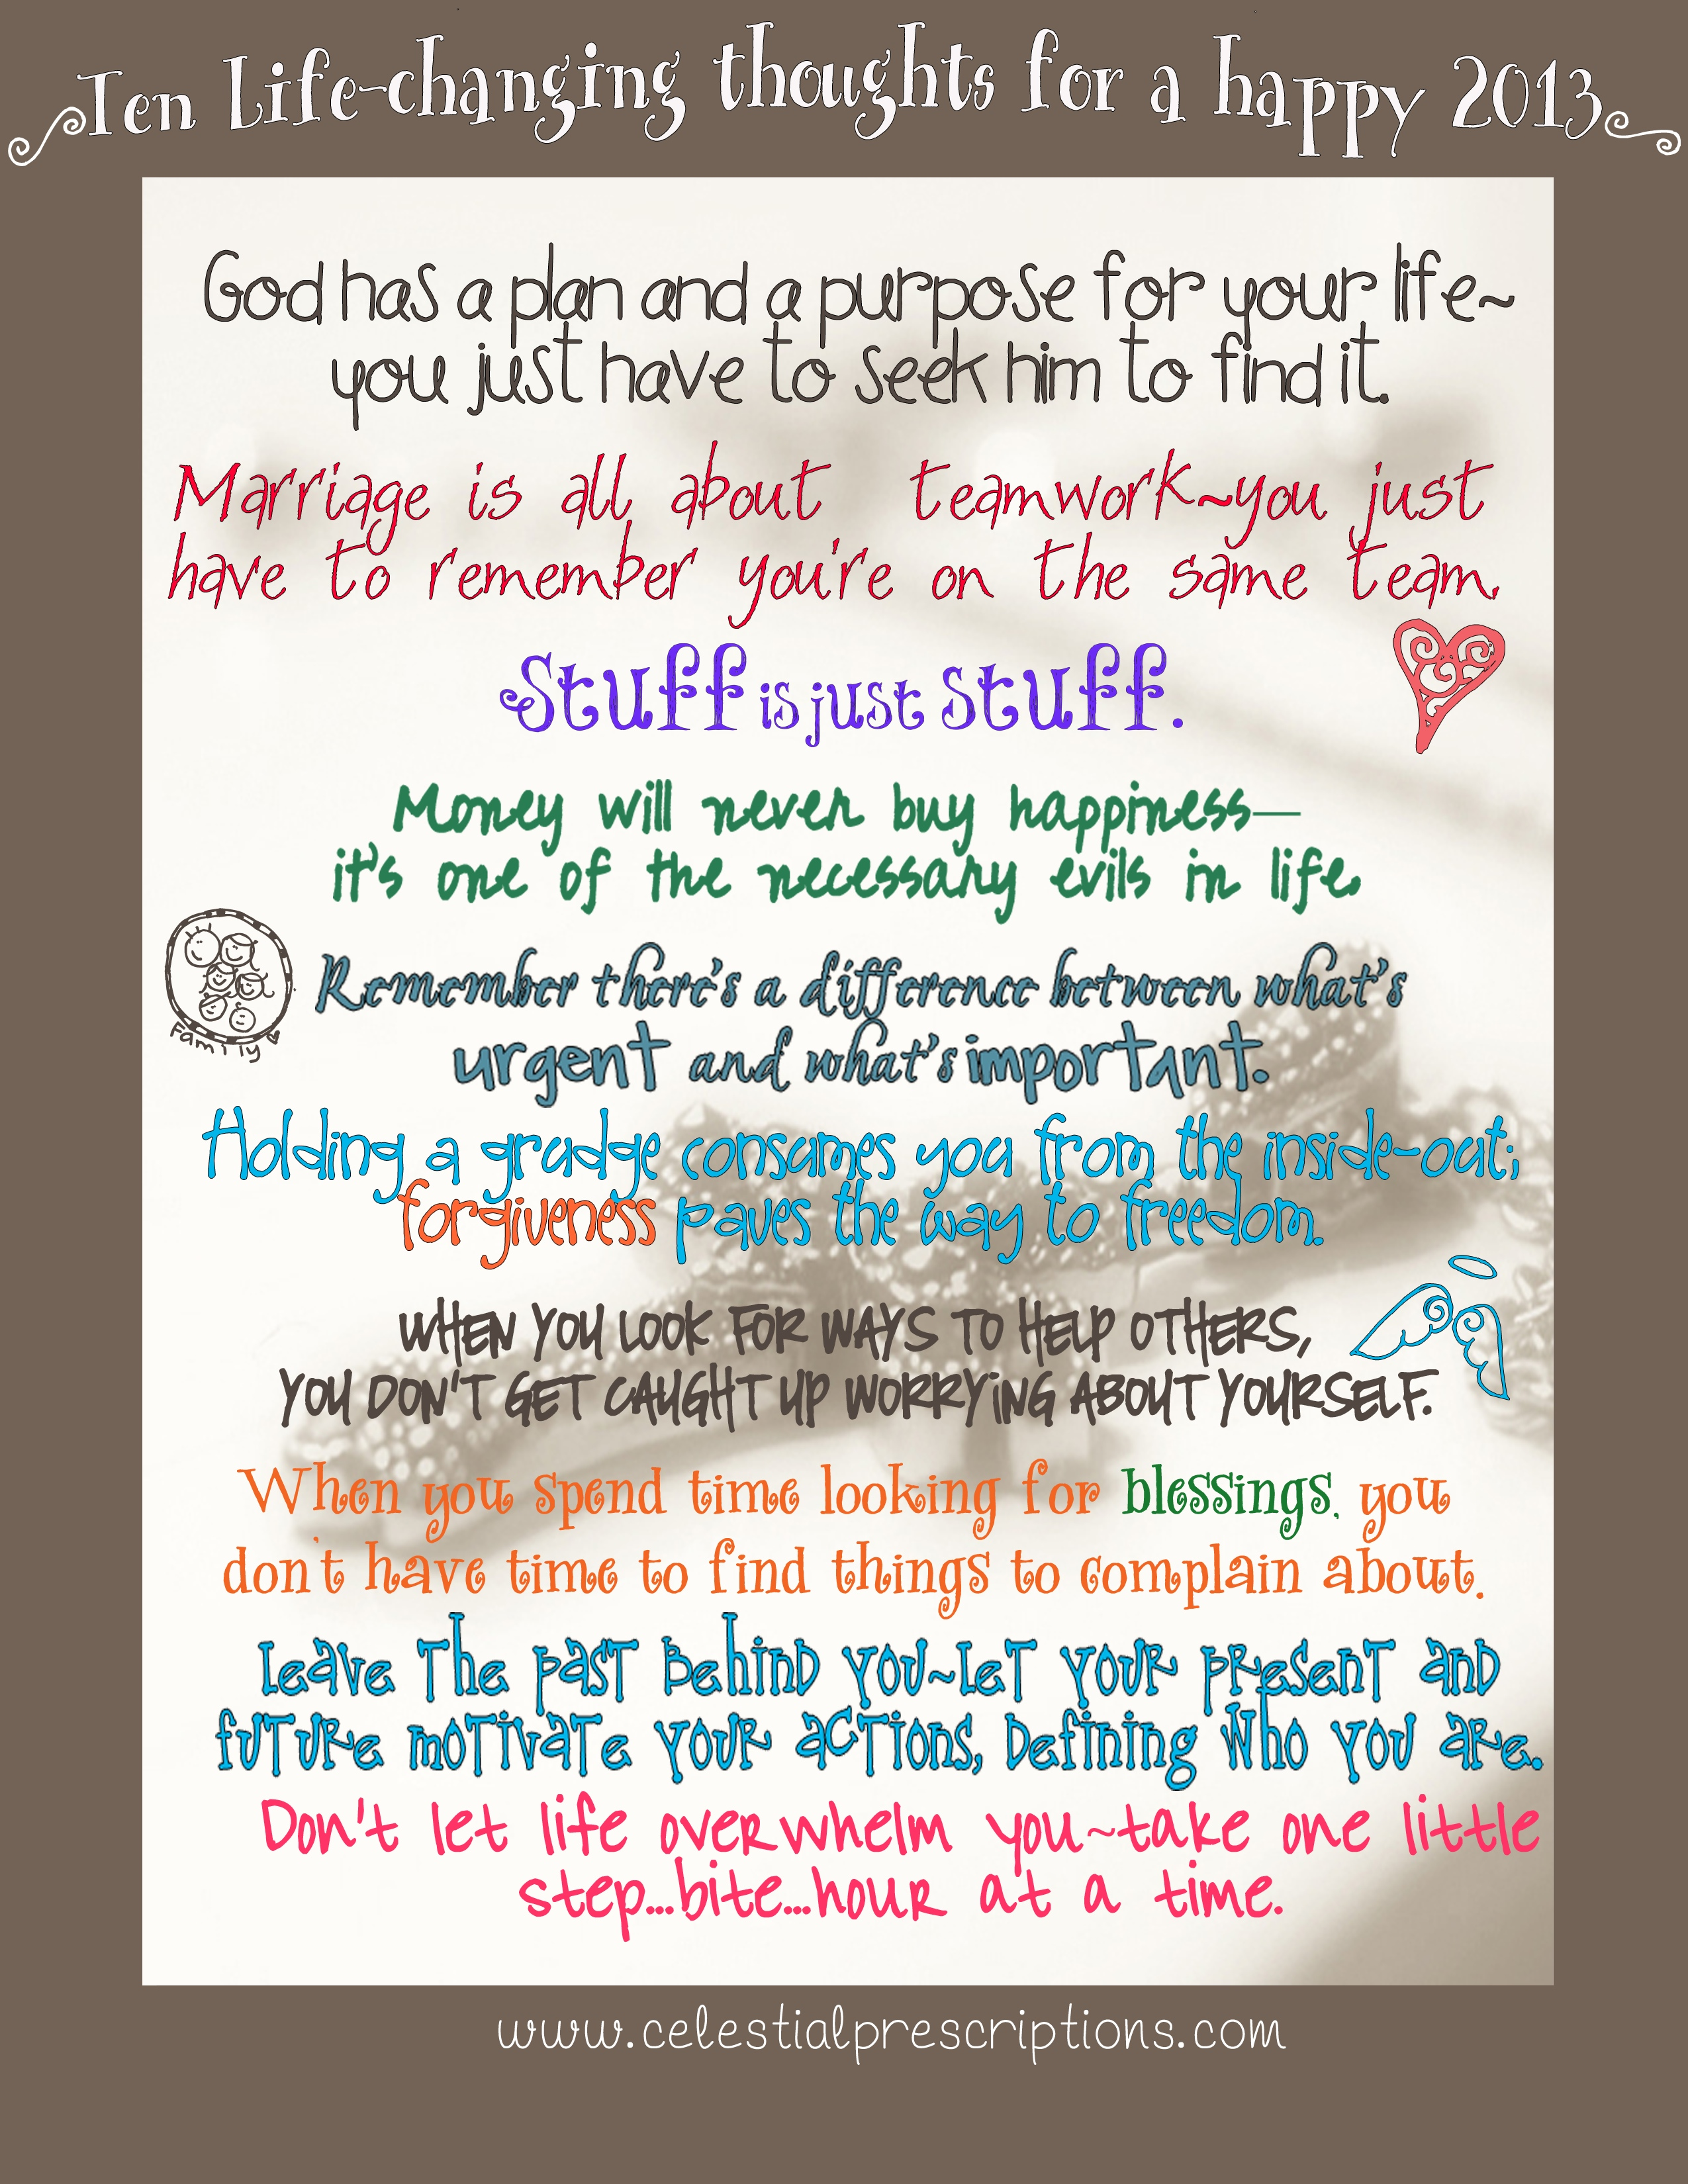 Ten LIfe-Changing Thoughts for a Happy 2013